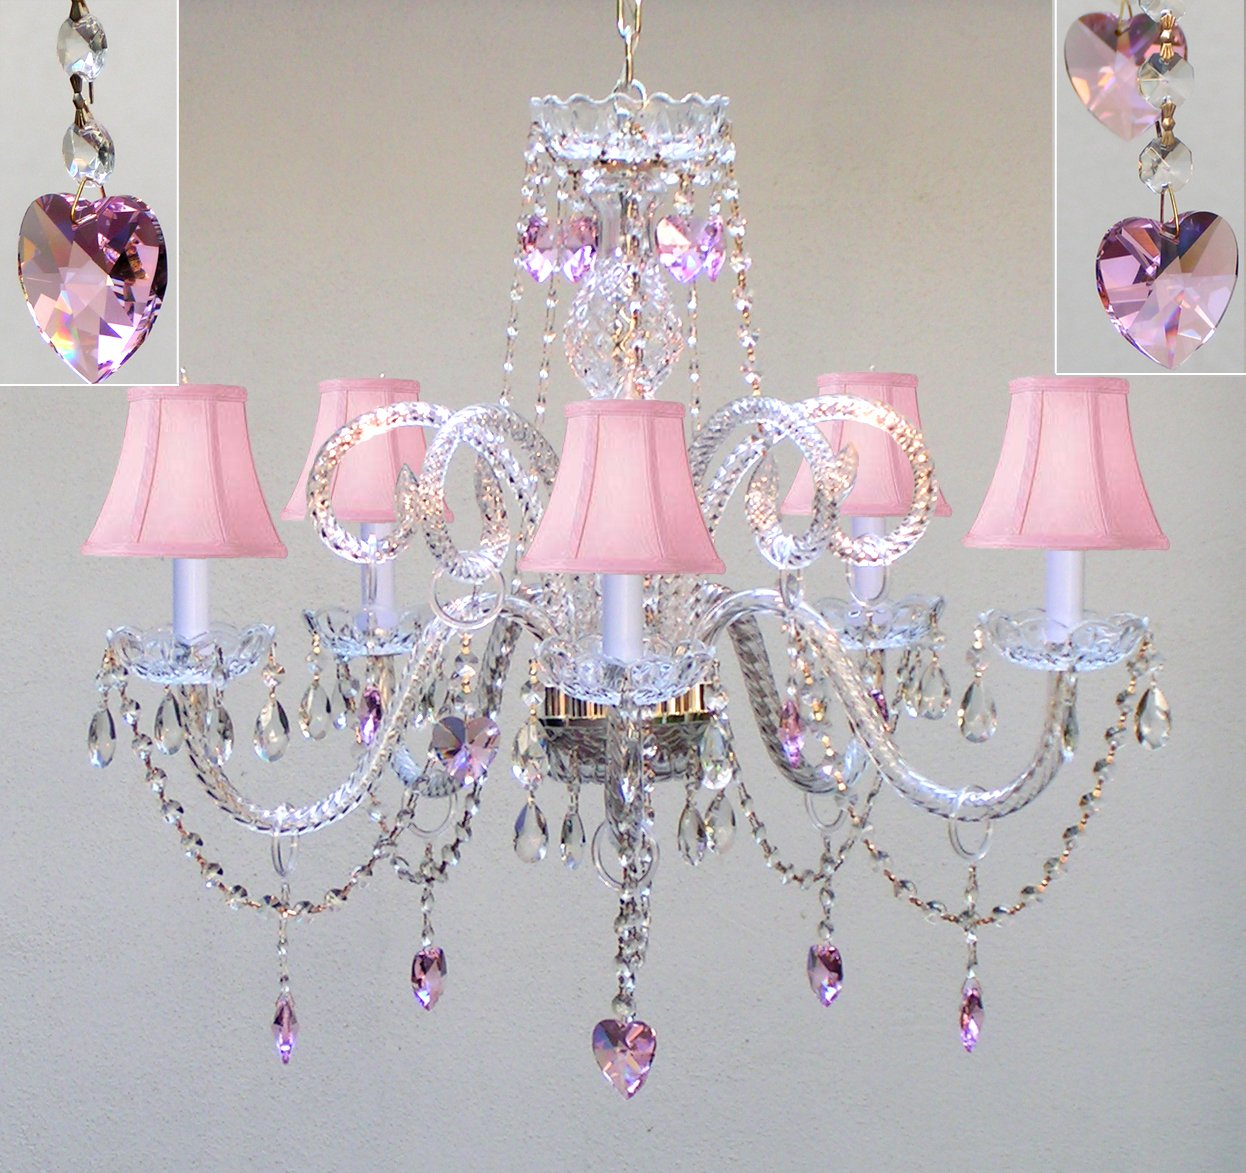 CHANDELIER LIGHTING W/ CRYSTAL PINK SHADES & HEARTS! H25'' x W24'' - PERFECT FOR KID'S AND GIRLS BEDROOM!